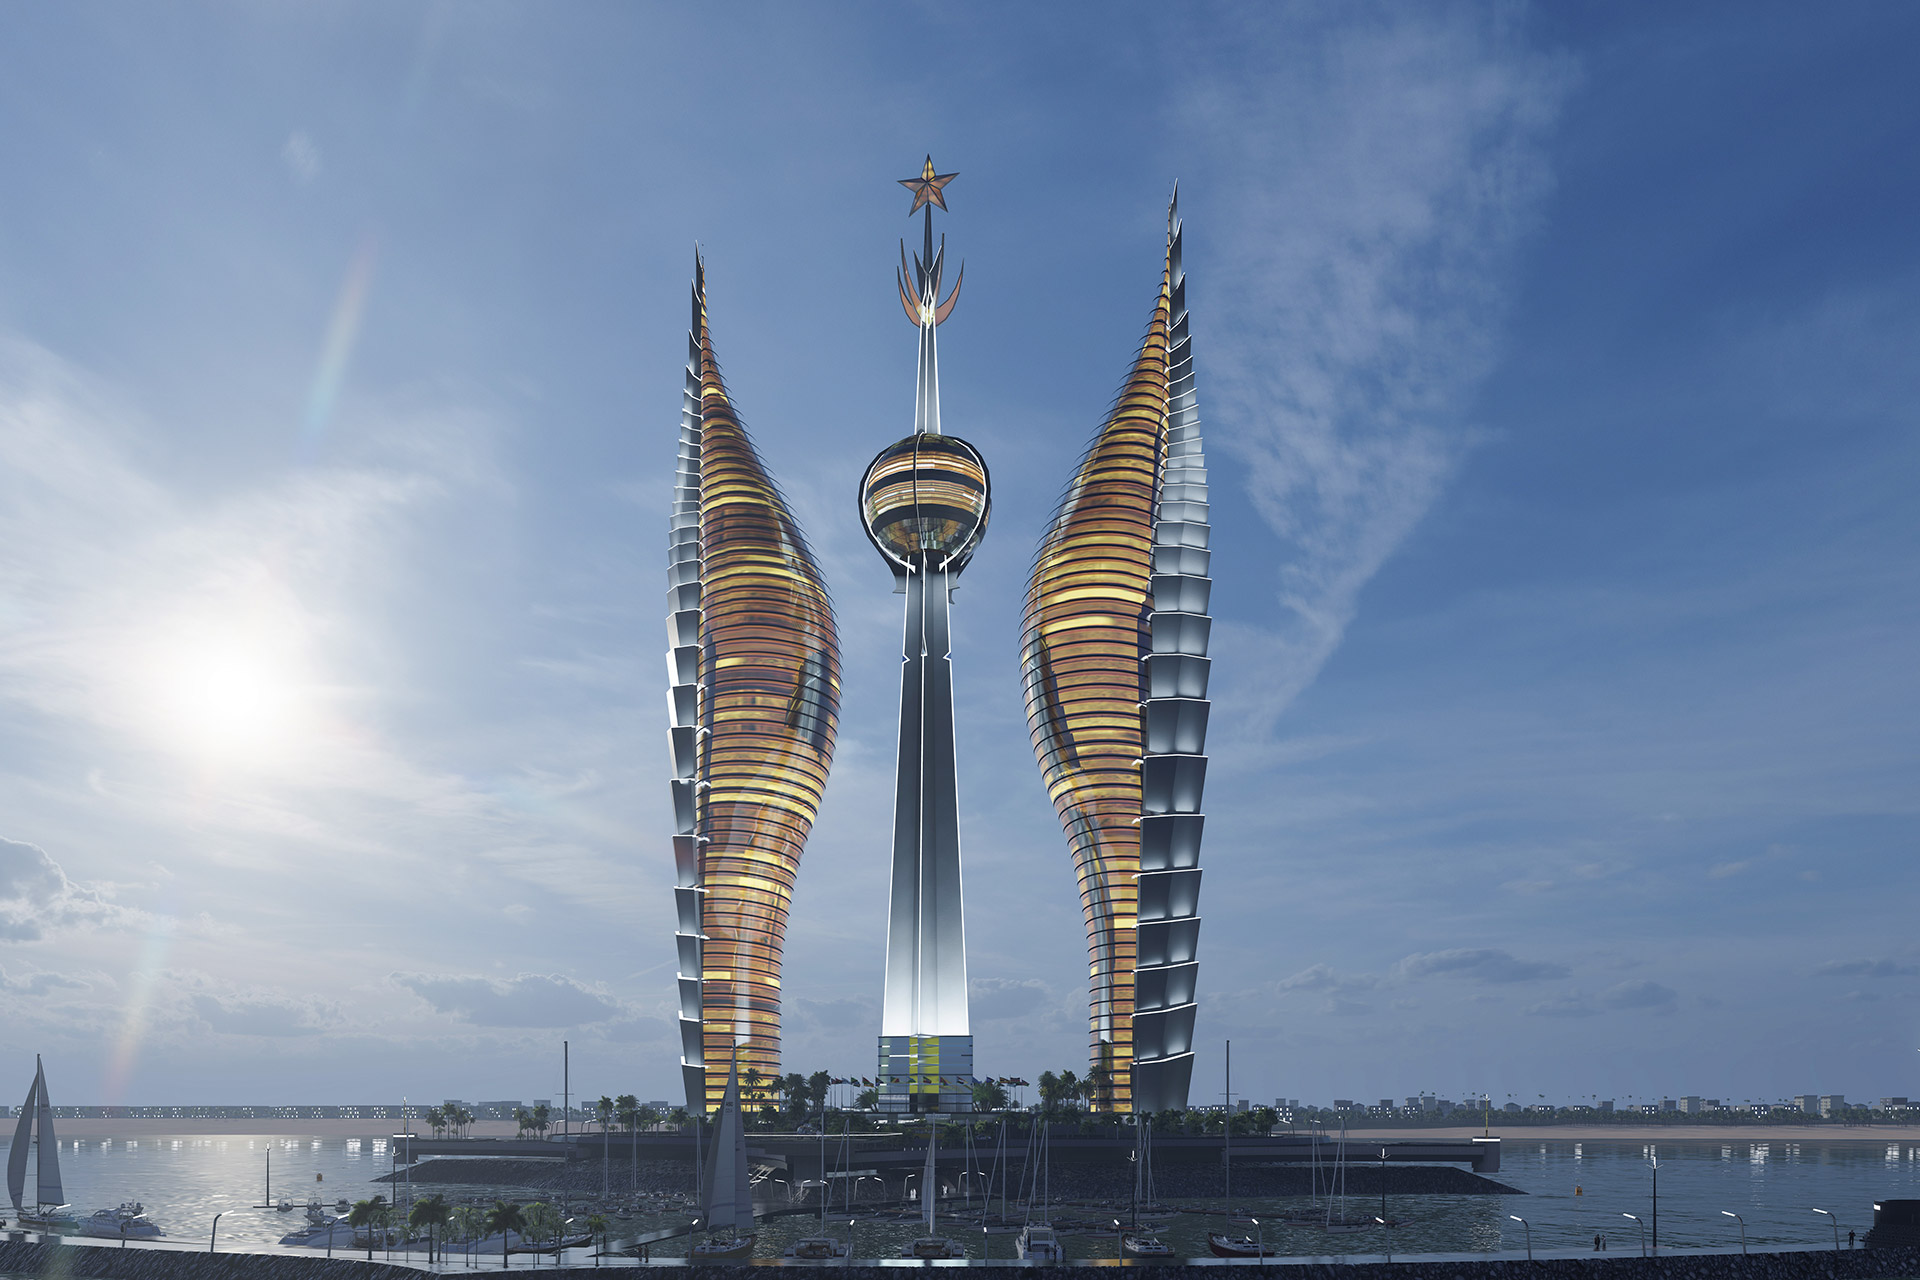 the DJIBOUTI TOWERS